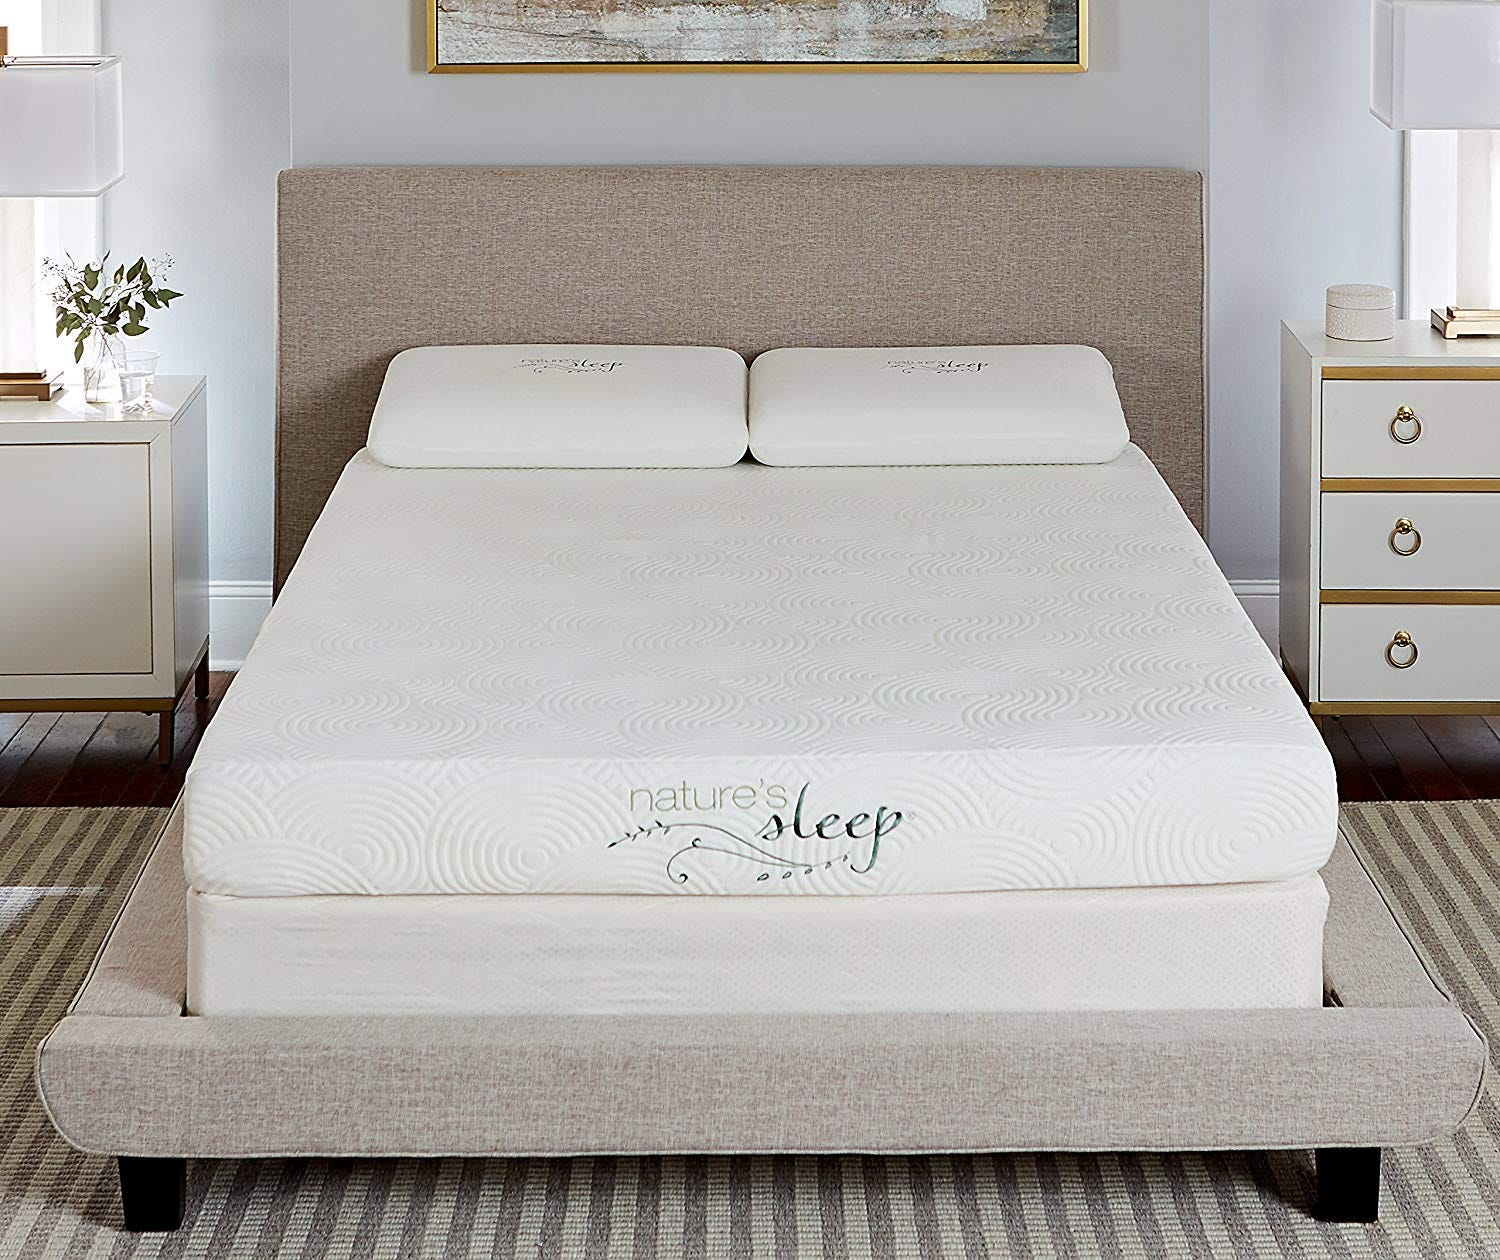 nature's sleep, foam mattress, firm, inexpensive, cheap, gel,